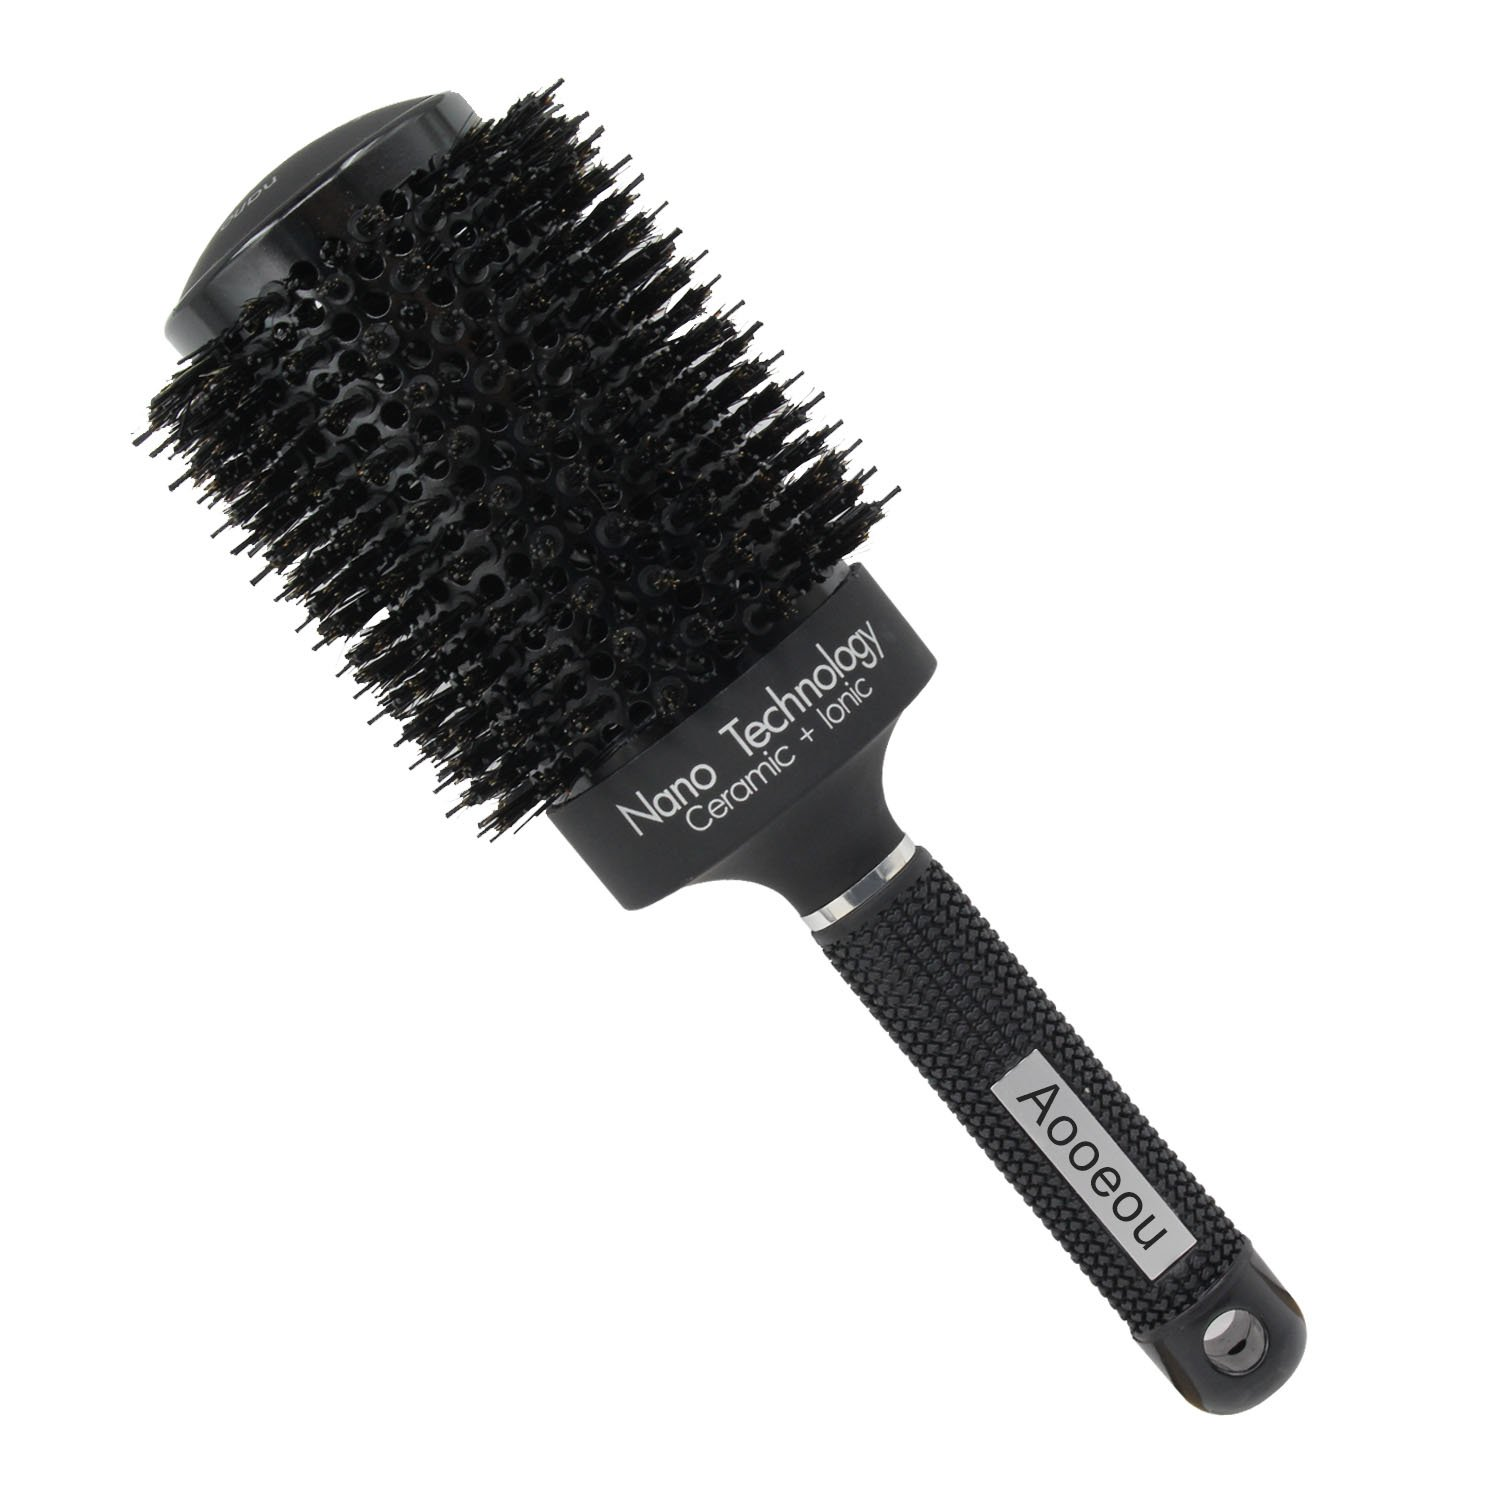 Large Round Brush with Boar Bristles 2.1 inch-Aooeou Nano Thermal Ceramic & Ionic Round Blow Dryer Barrel Hair Brush for Curly Hair Drying, Styling, Curling